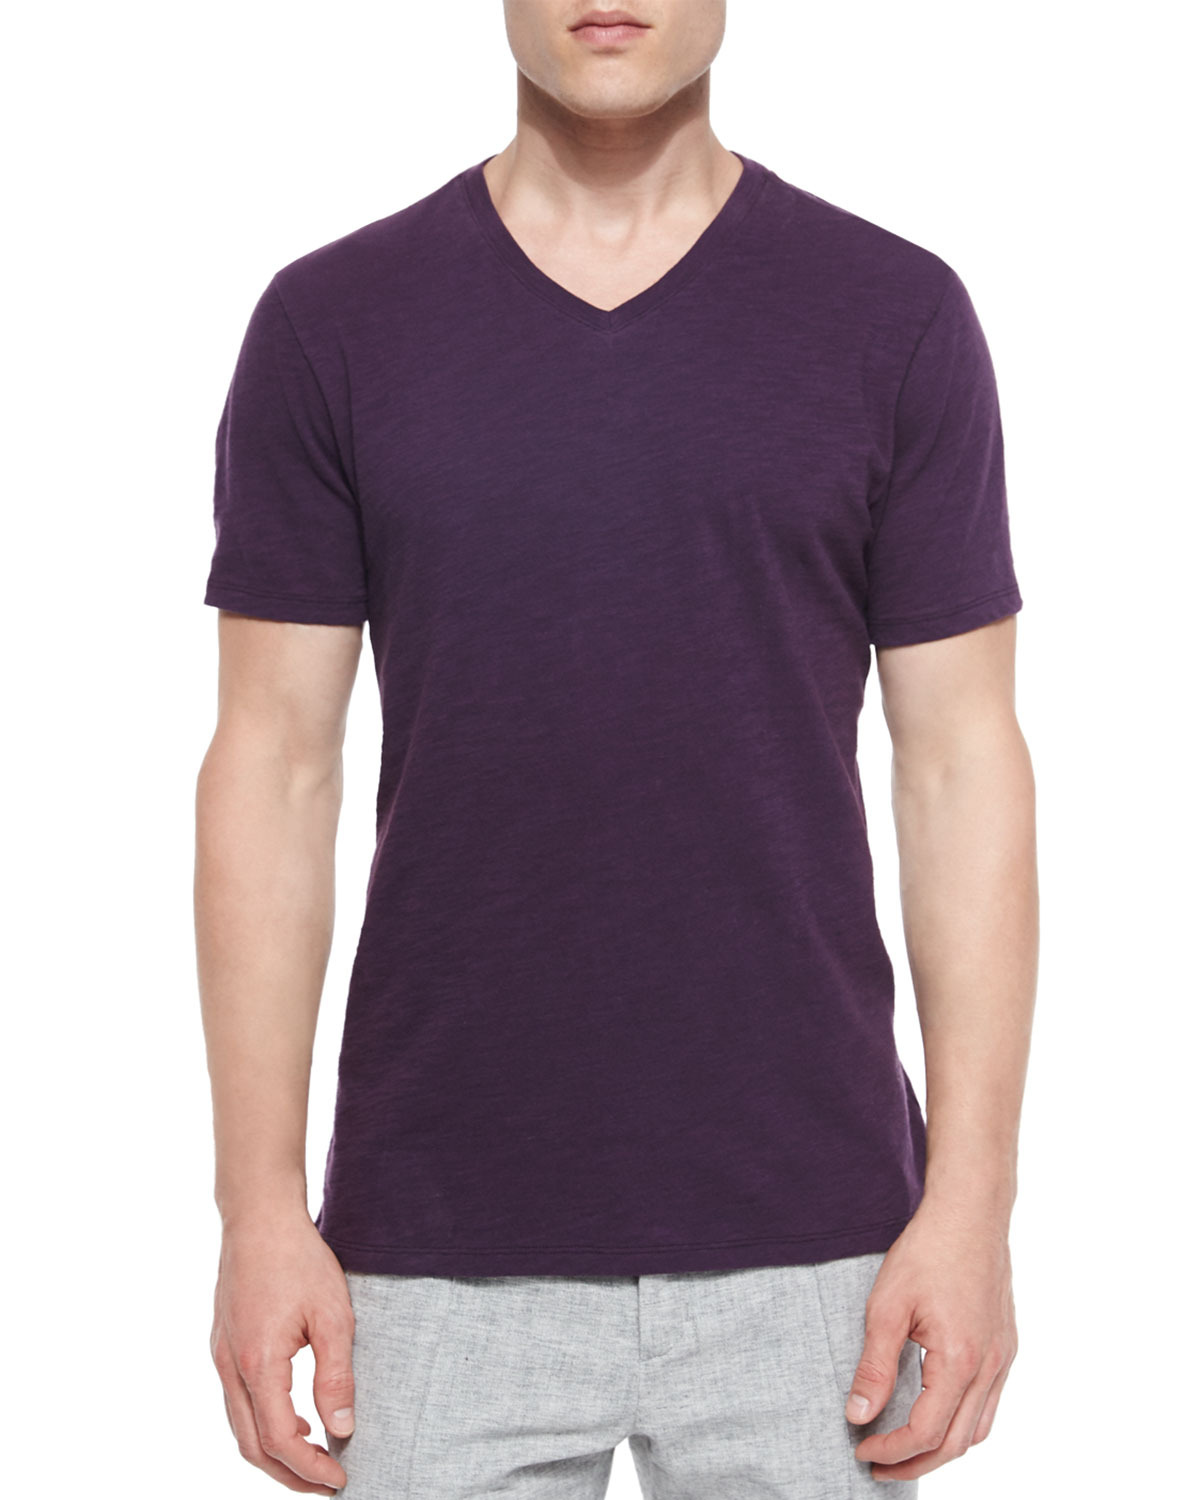 Vince v neck t shirt in purple for men lyst for Vince tee shirts sale